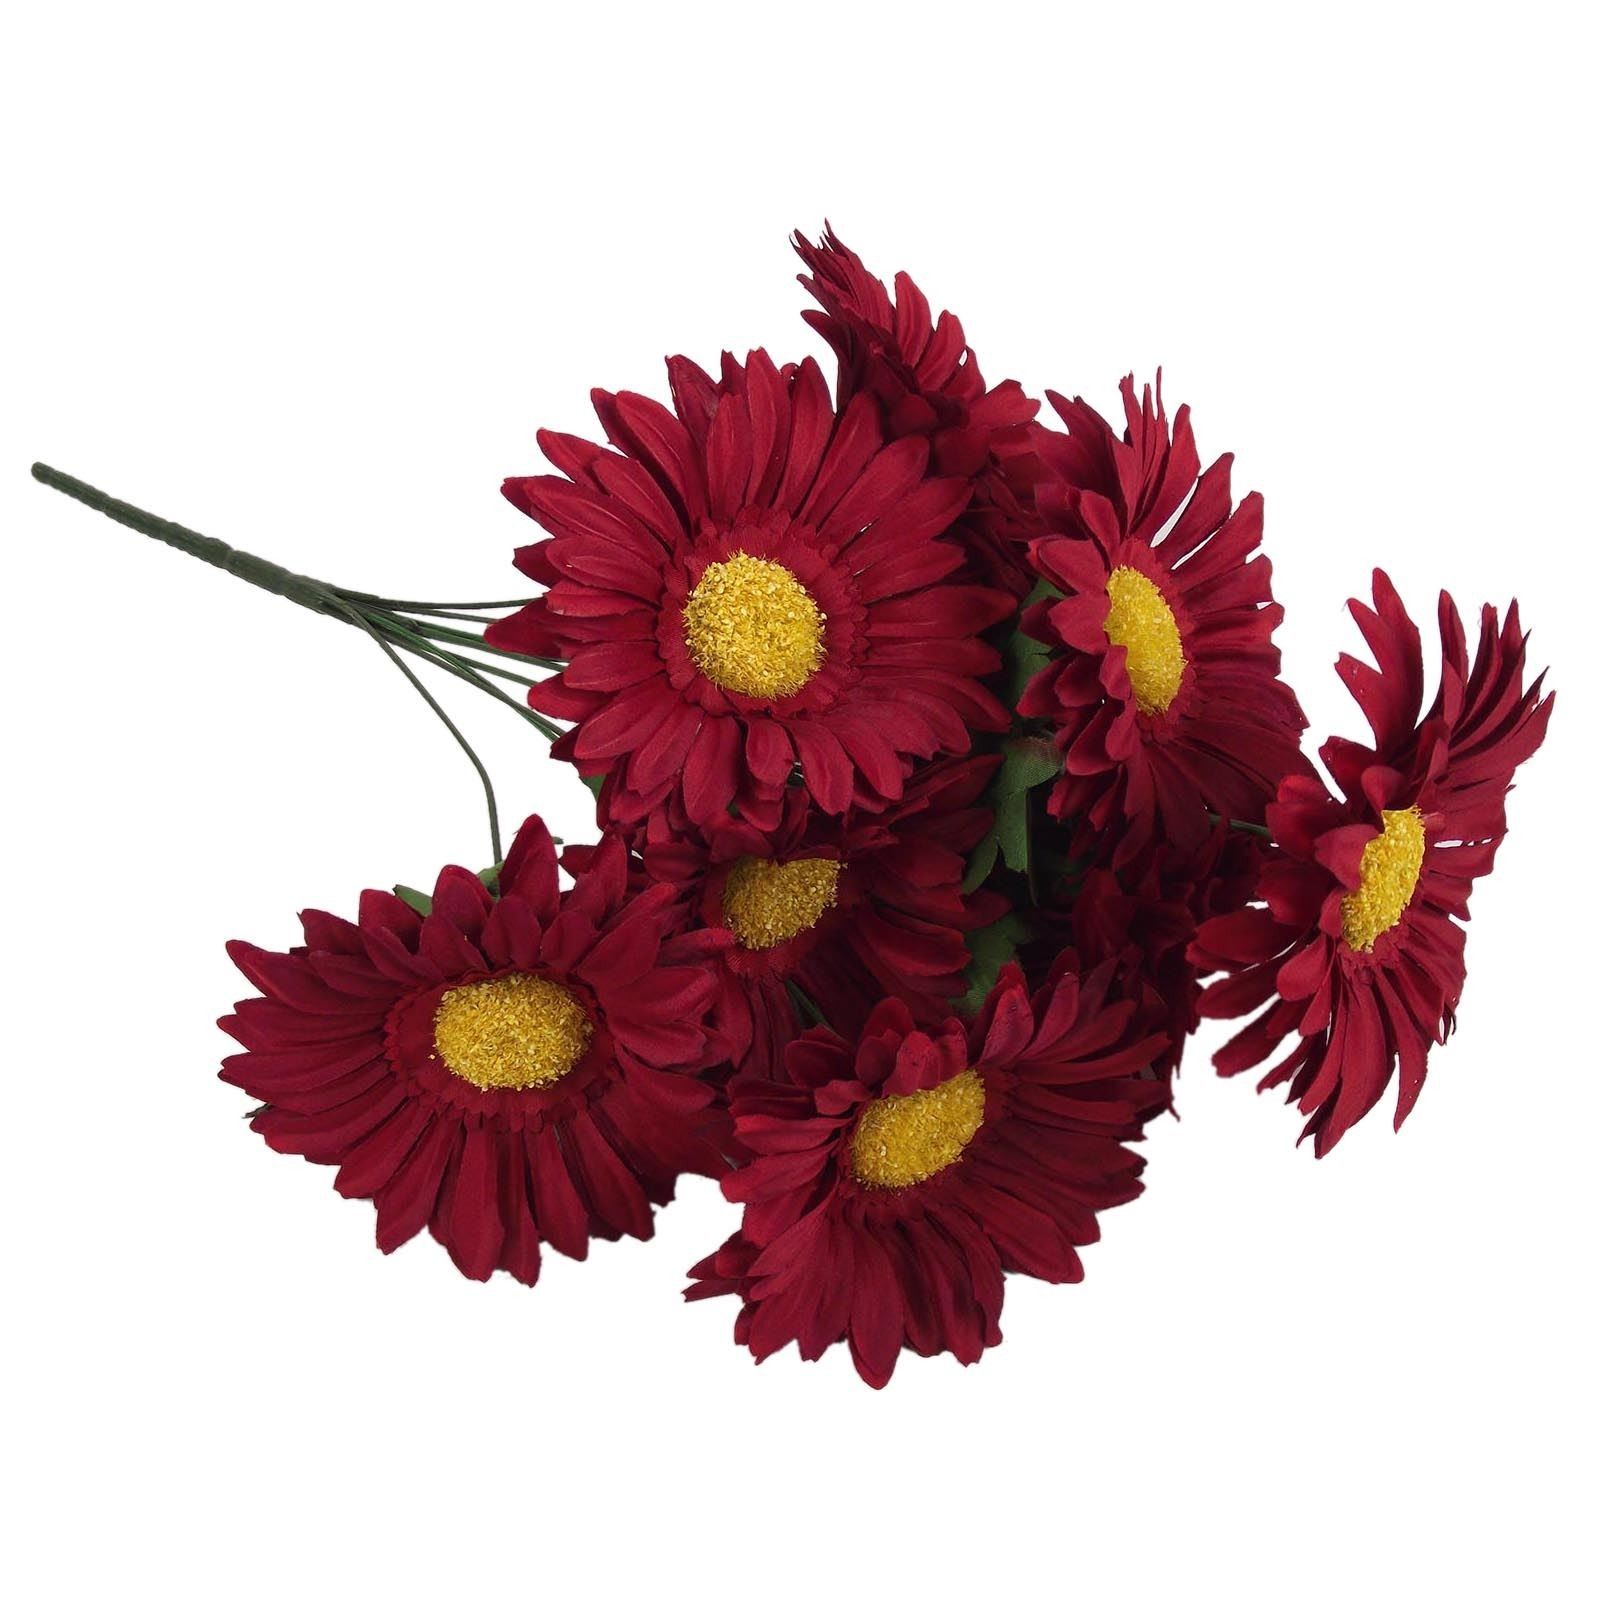 Loose Flowers 6 Silk Burgundy Gerbera Daisies Artificial Silk Wedding Flowers